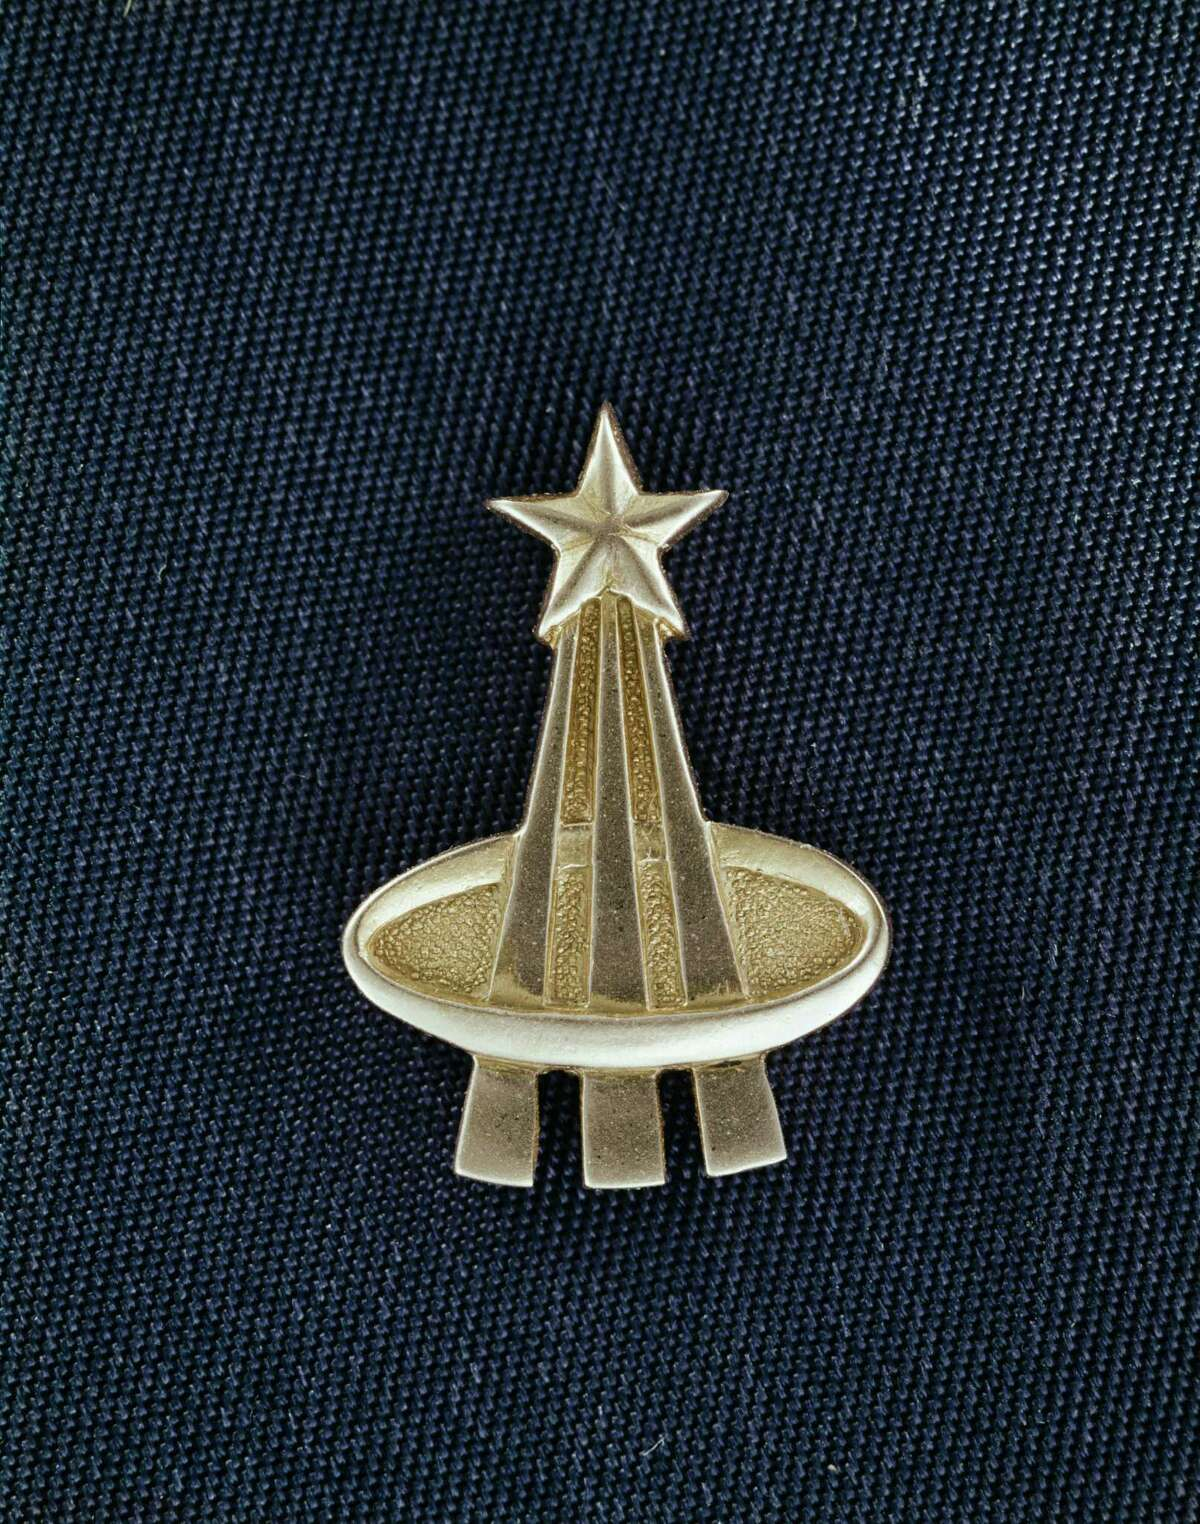 The gold pin that NASA astronauts receive after their first flight into space.